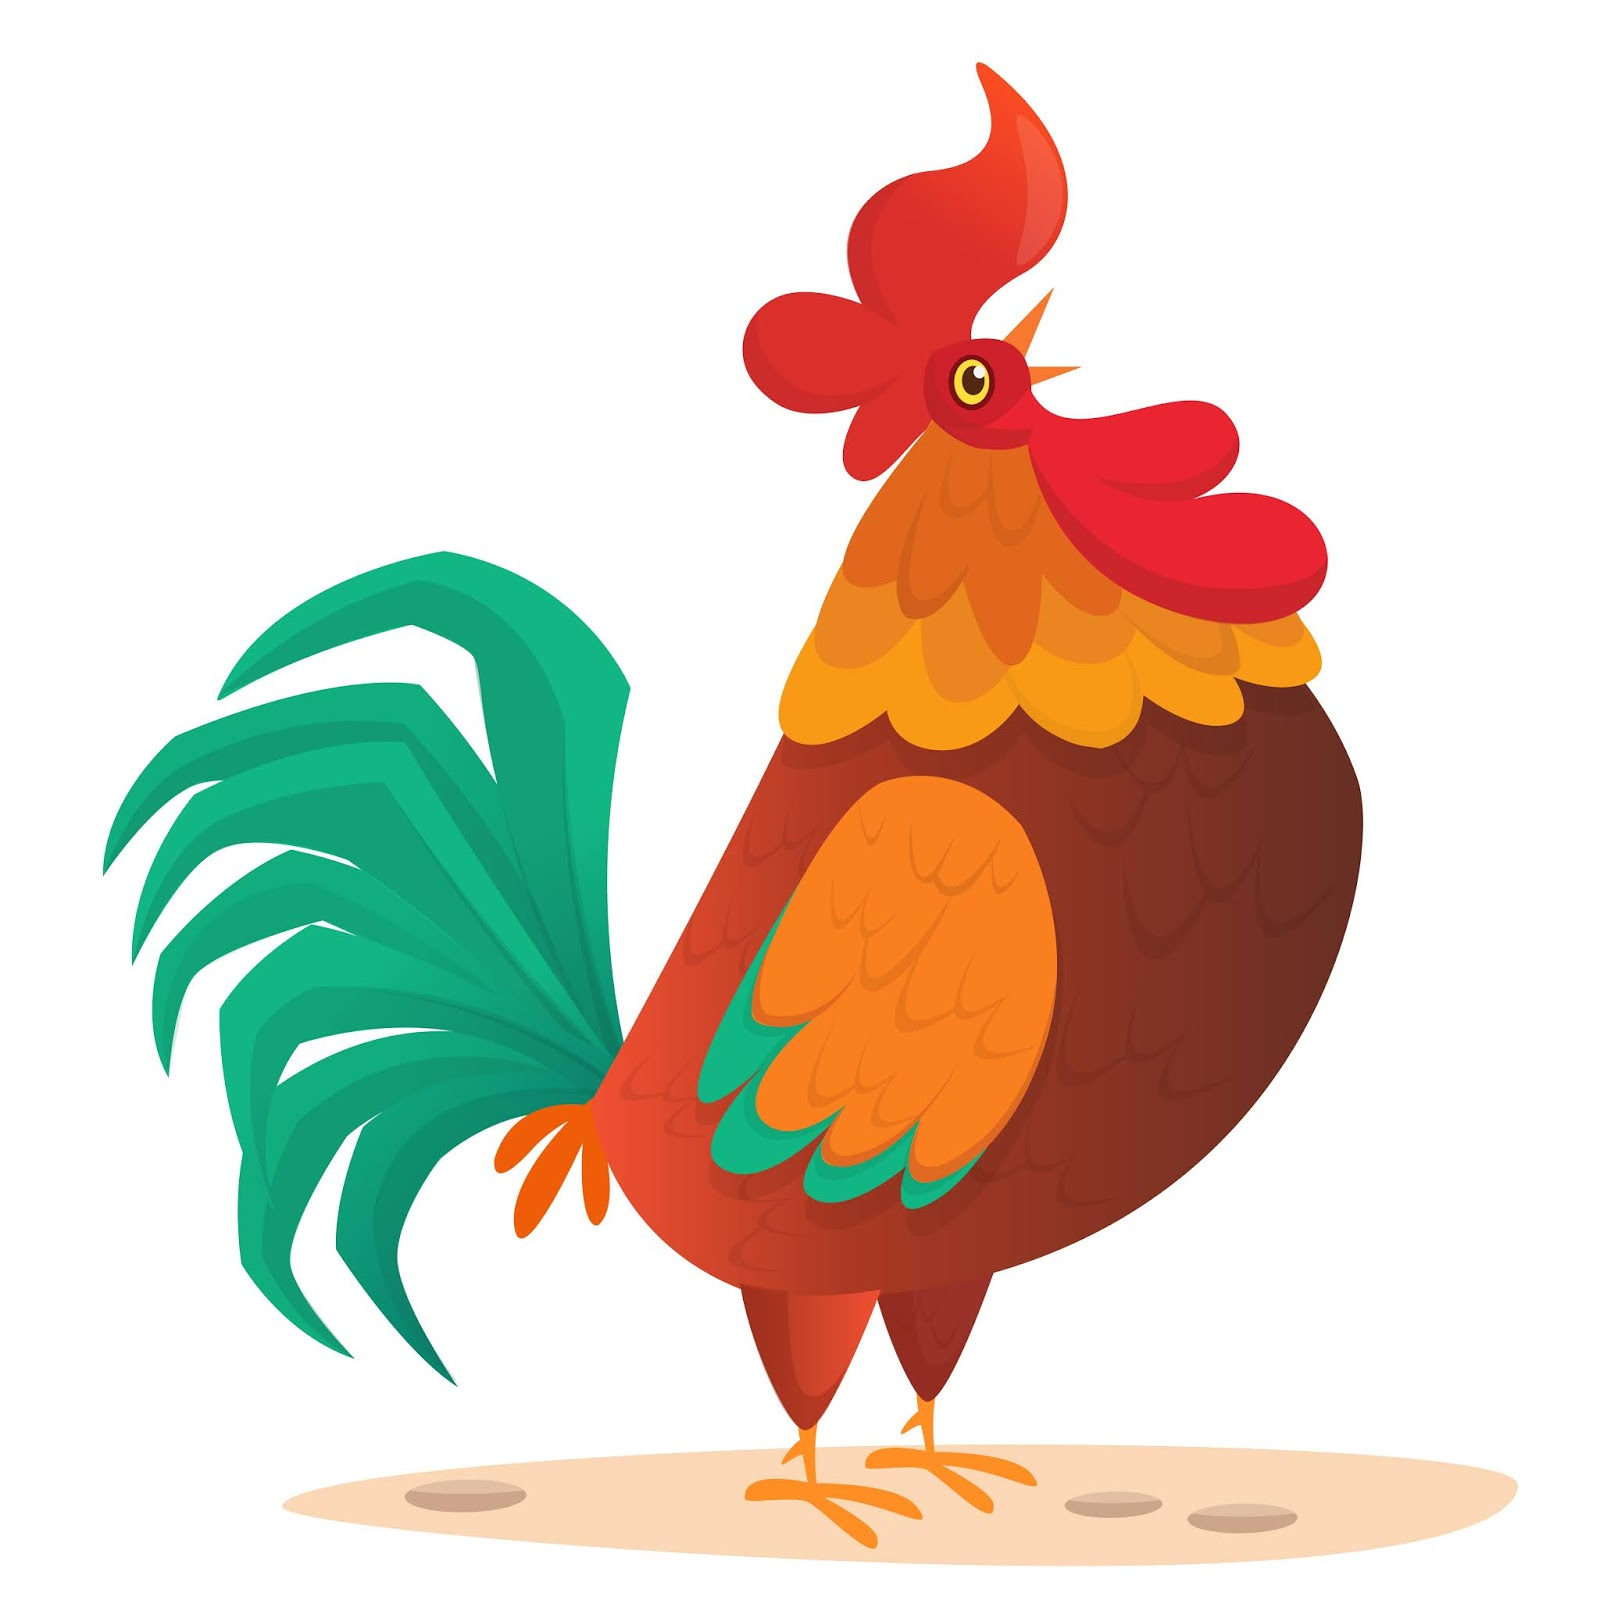 Cartoon Funny Rooster Illustration Free Download Vector CDR, AI, EPS and PNG Formats